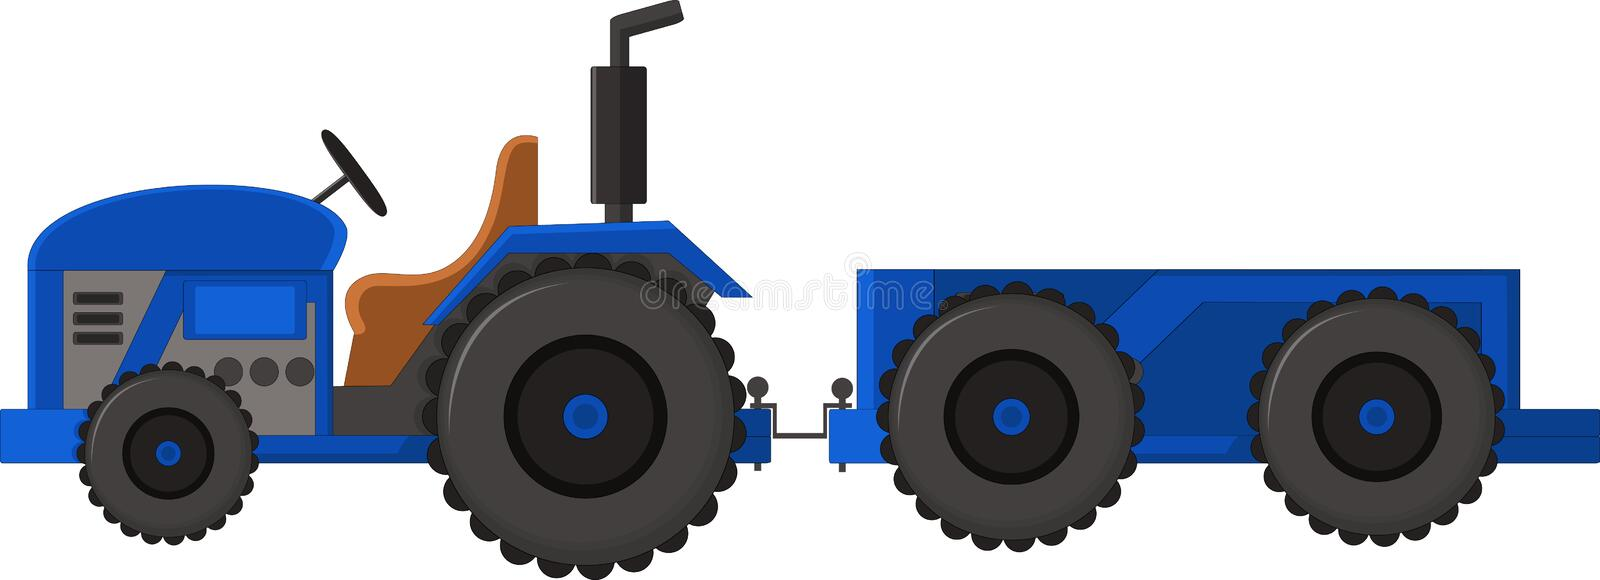 Realistic blue tractor icon, logo, shape with big wheels isolated with smoke on white background vector illustration